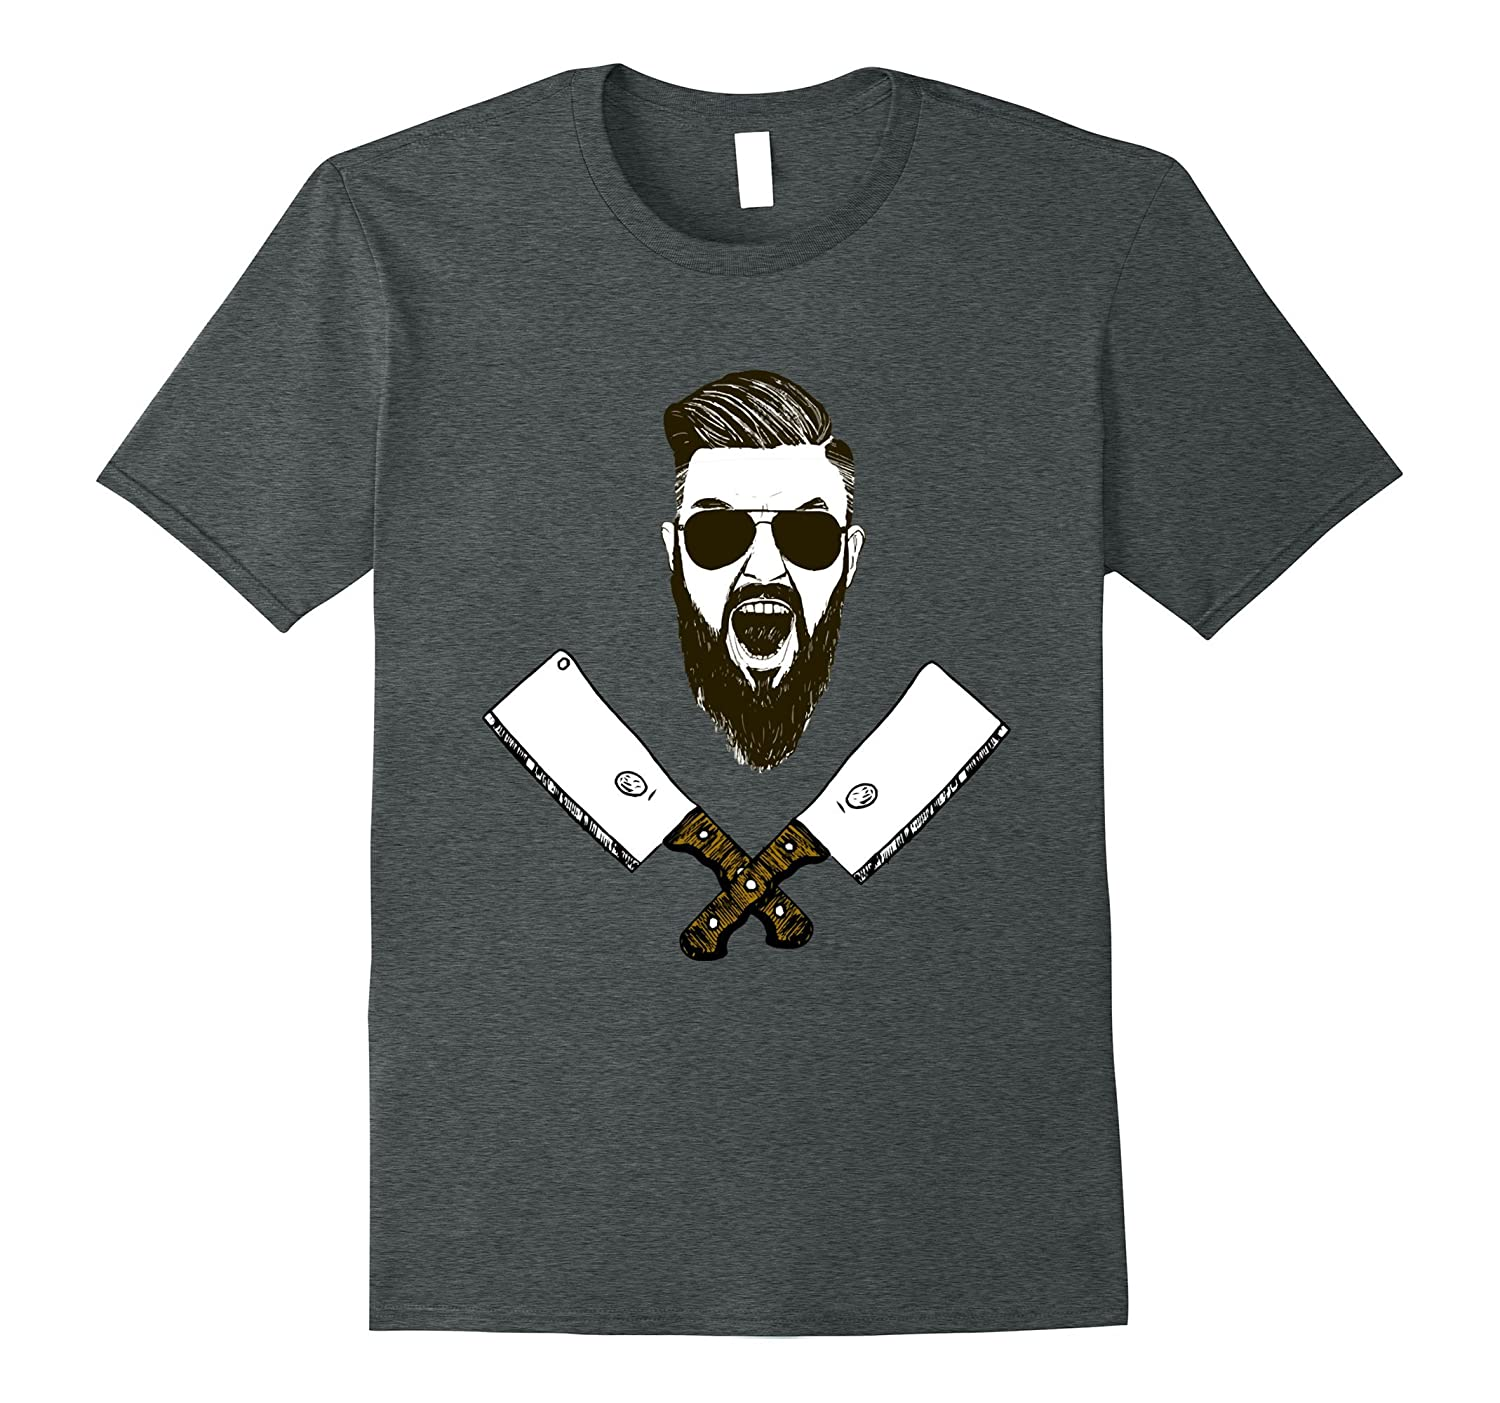 bearded butcher with sunglasses and knifes t-shirt-TJ